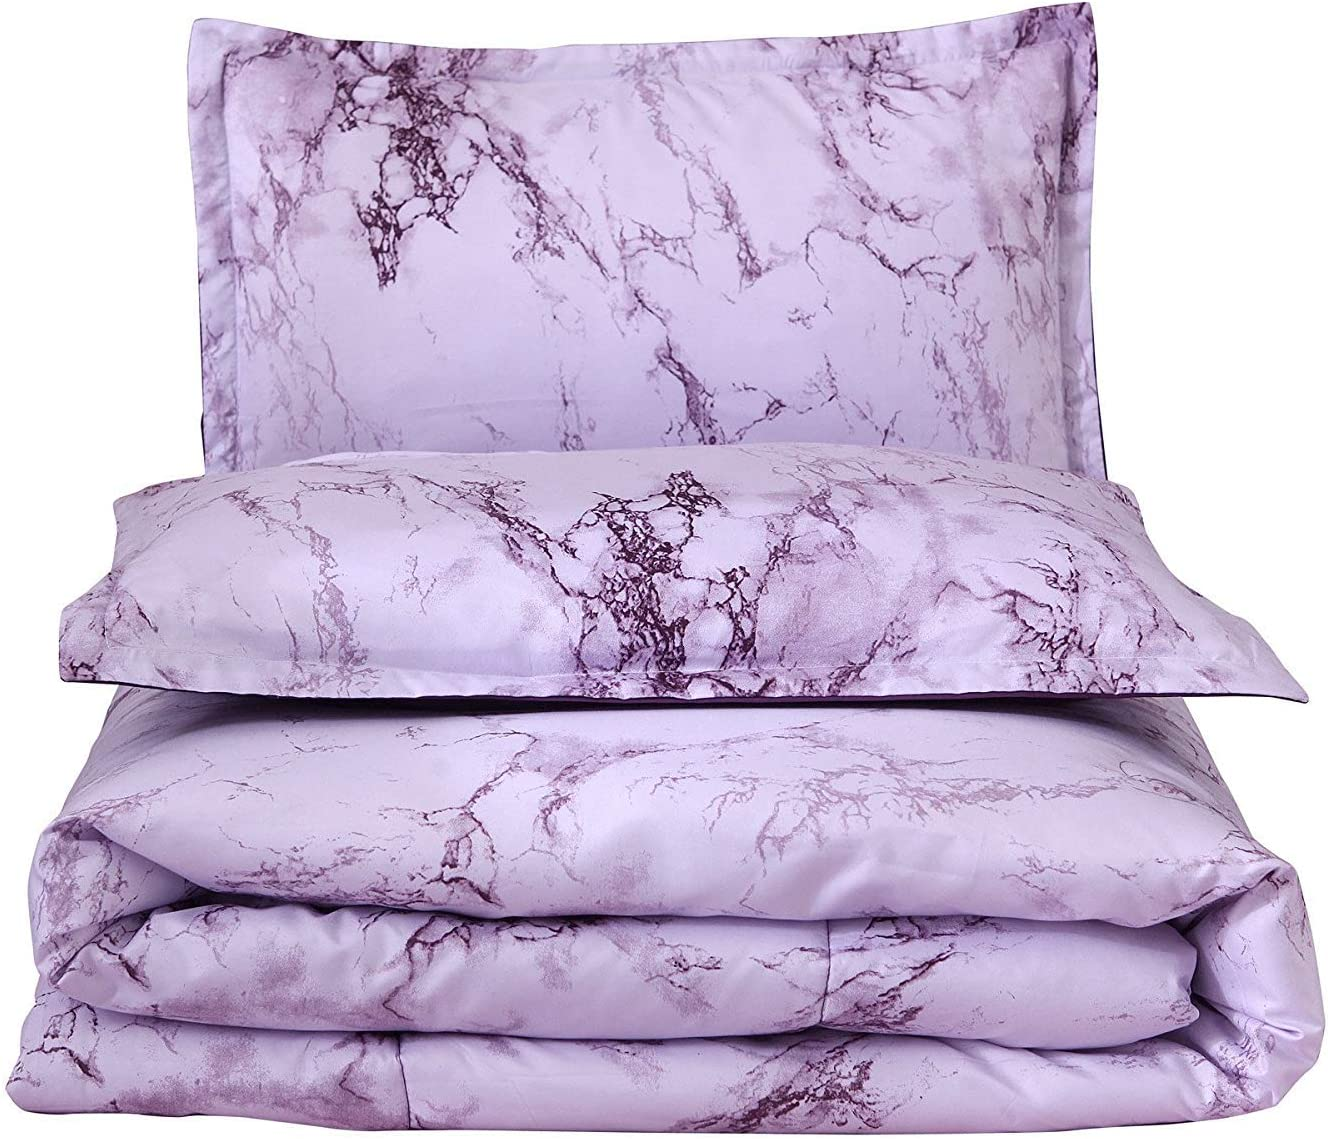 A Nice Night Marble Design Quilt Comforter Set Bed-in-a-Bag,Queen Blue-Marble